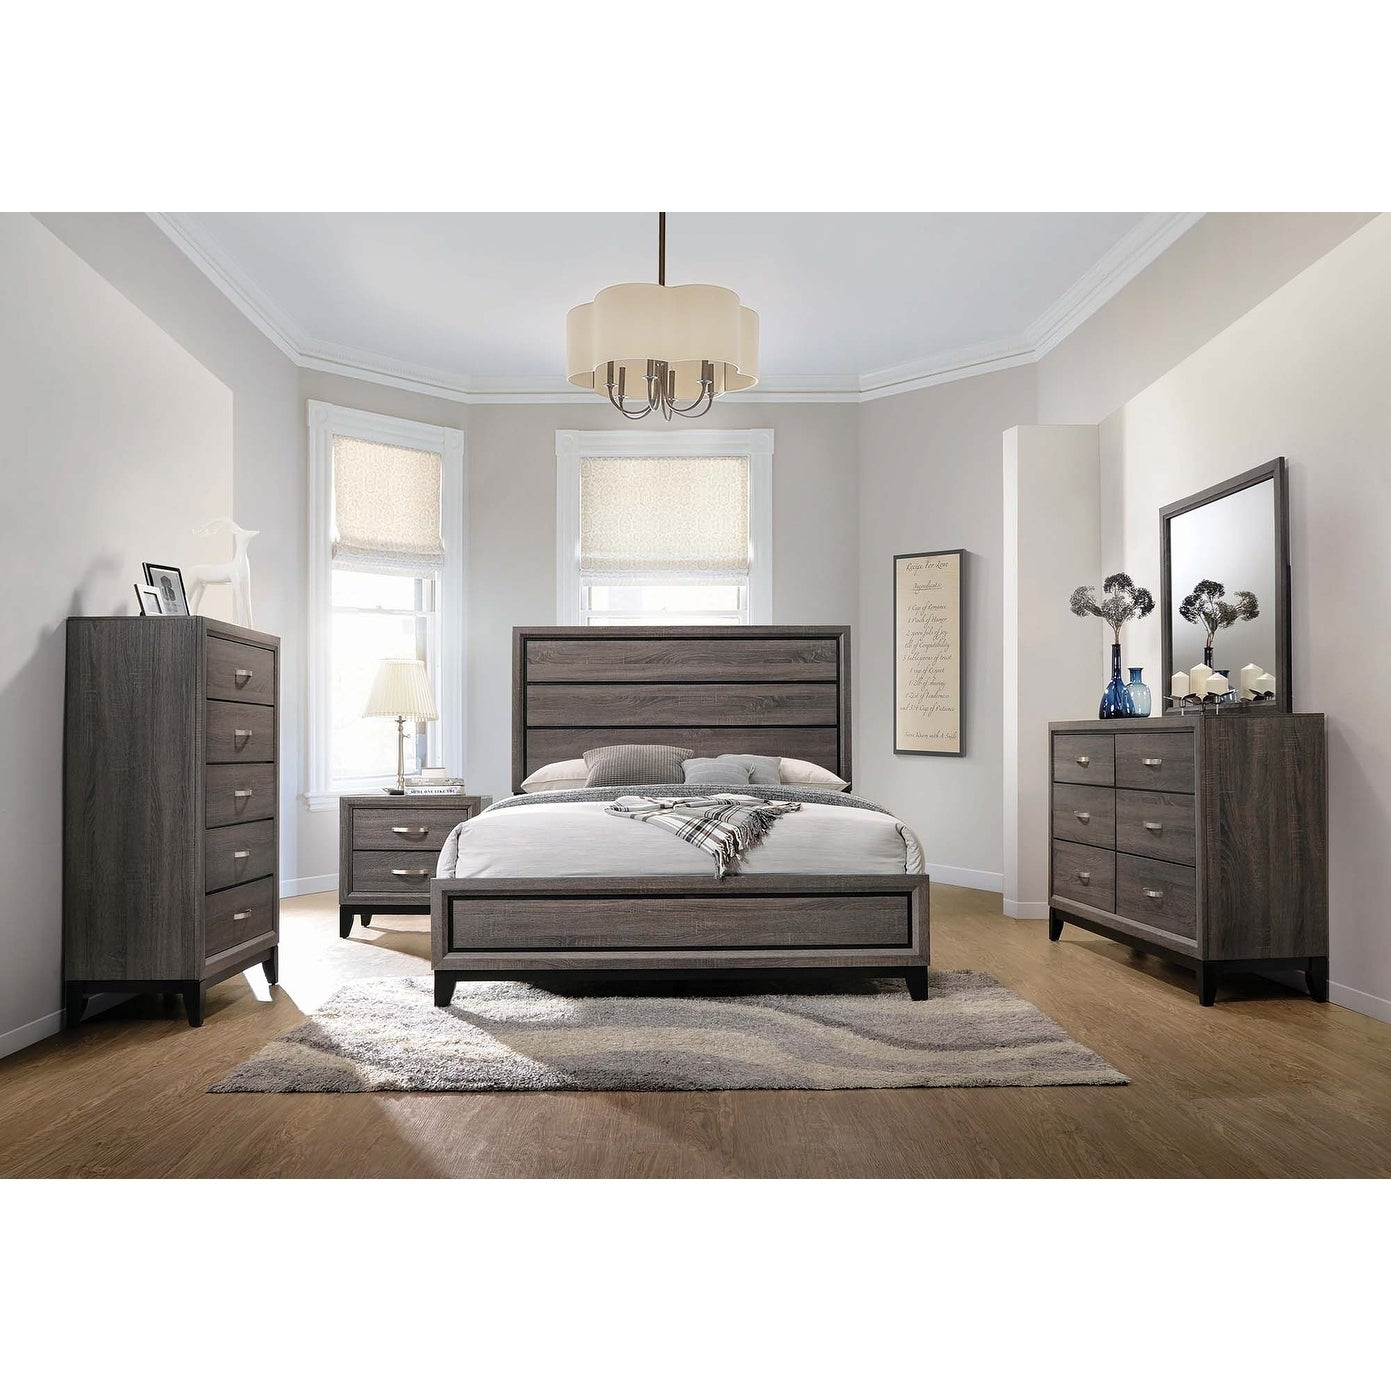 Carbon Loft Conan Grey Oak 4-piece Bedroom Set